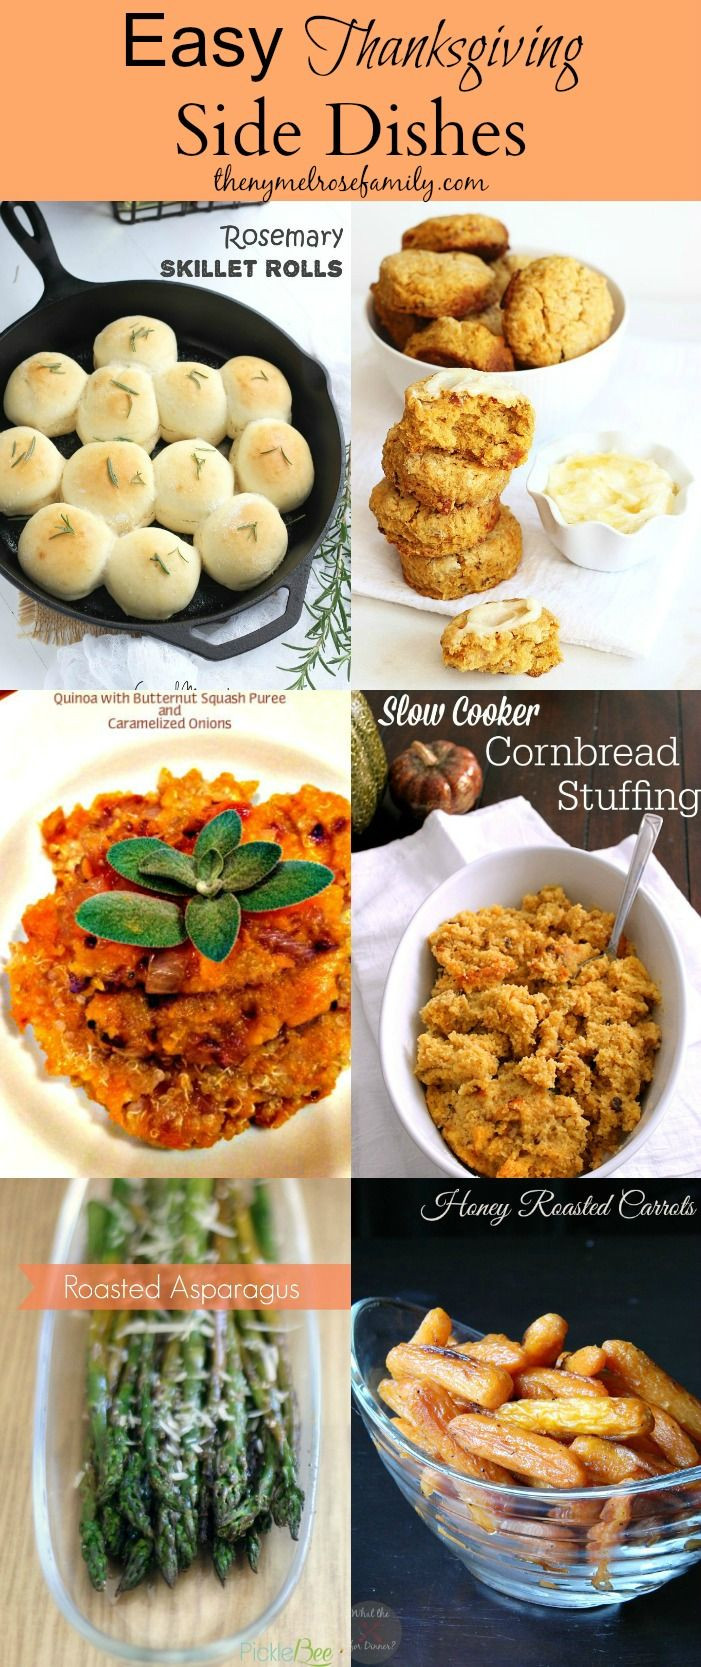 Thanksgiving Side Dishes Easy  199 best images about Easy Thanksgiving Recipes & Crafts